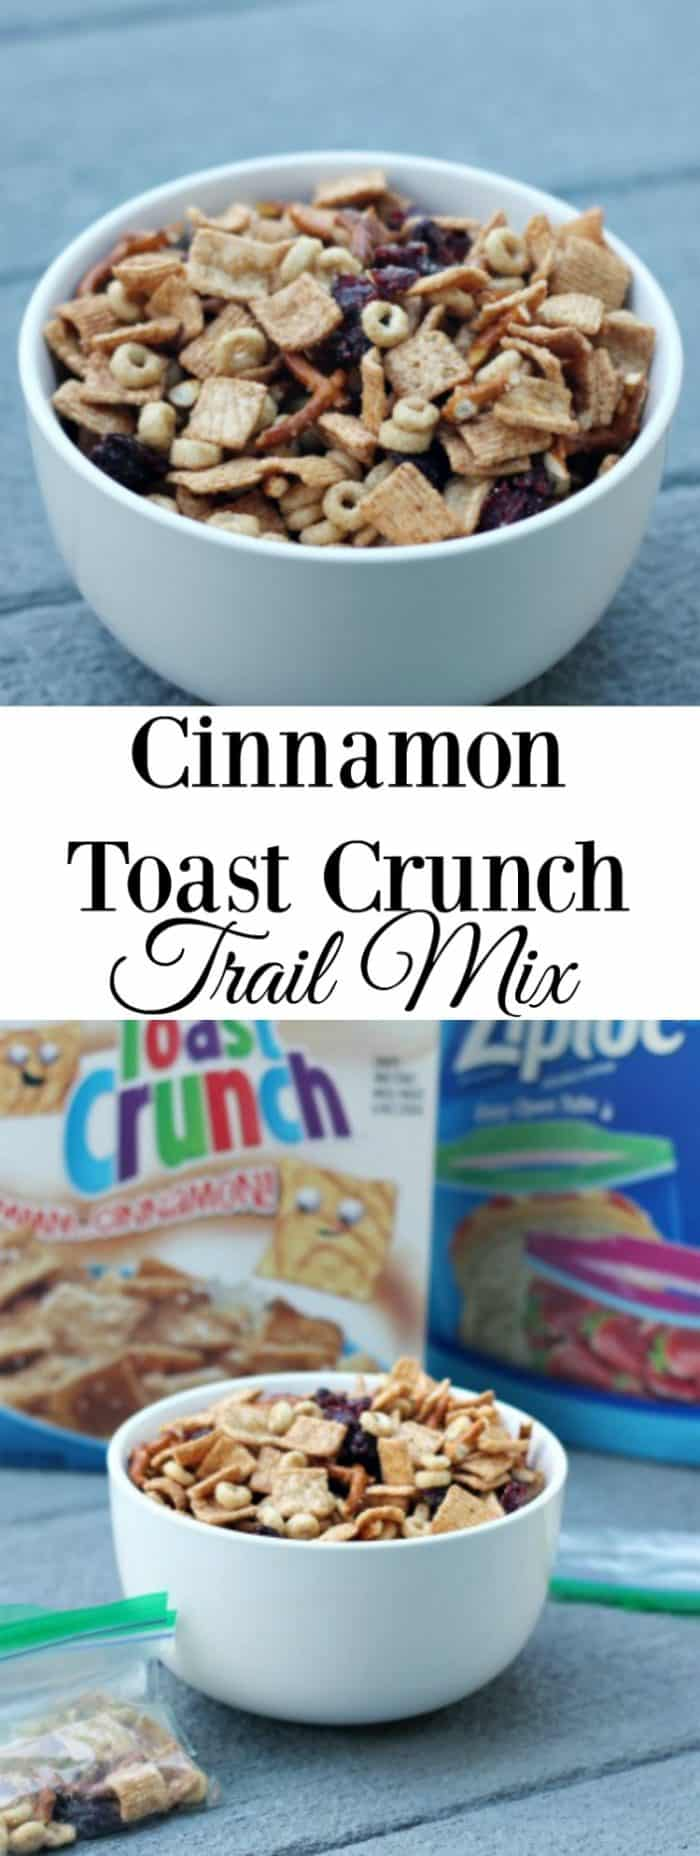 Ready for a different kind of trail mix? This Cinnamon Toast Crunch Trail Mix is the perfect snack idea.